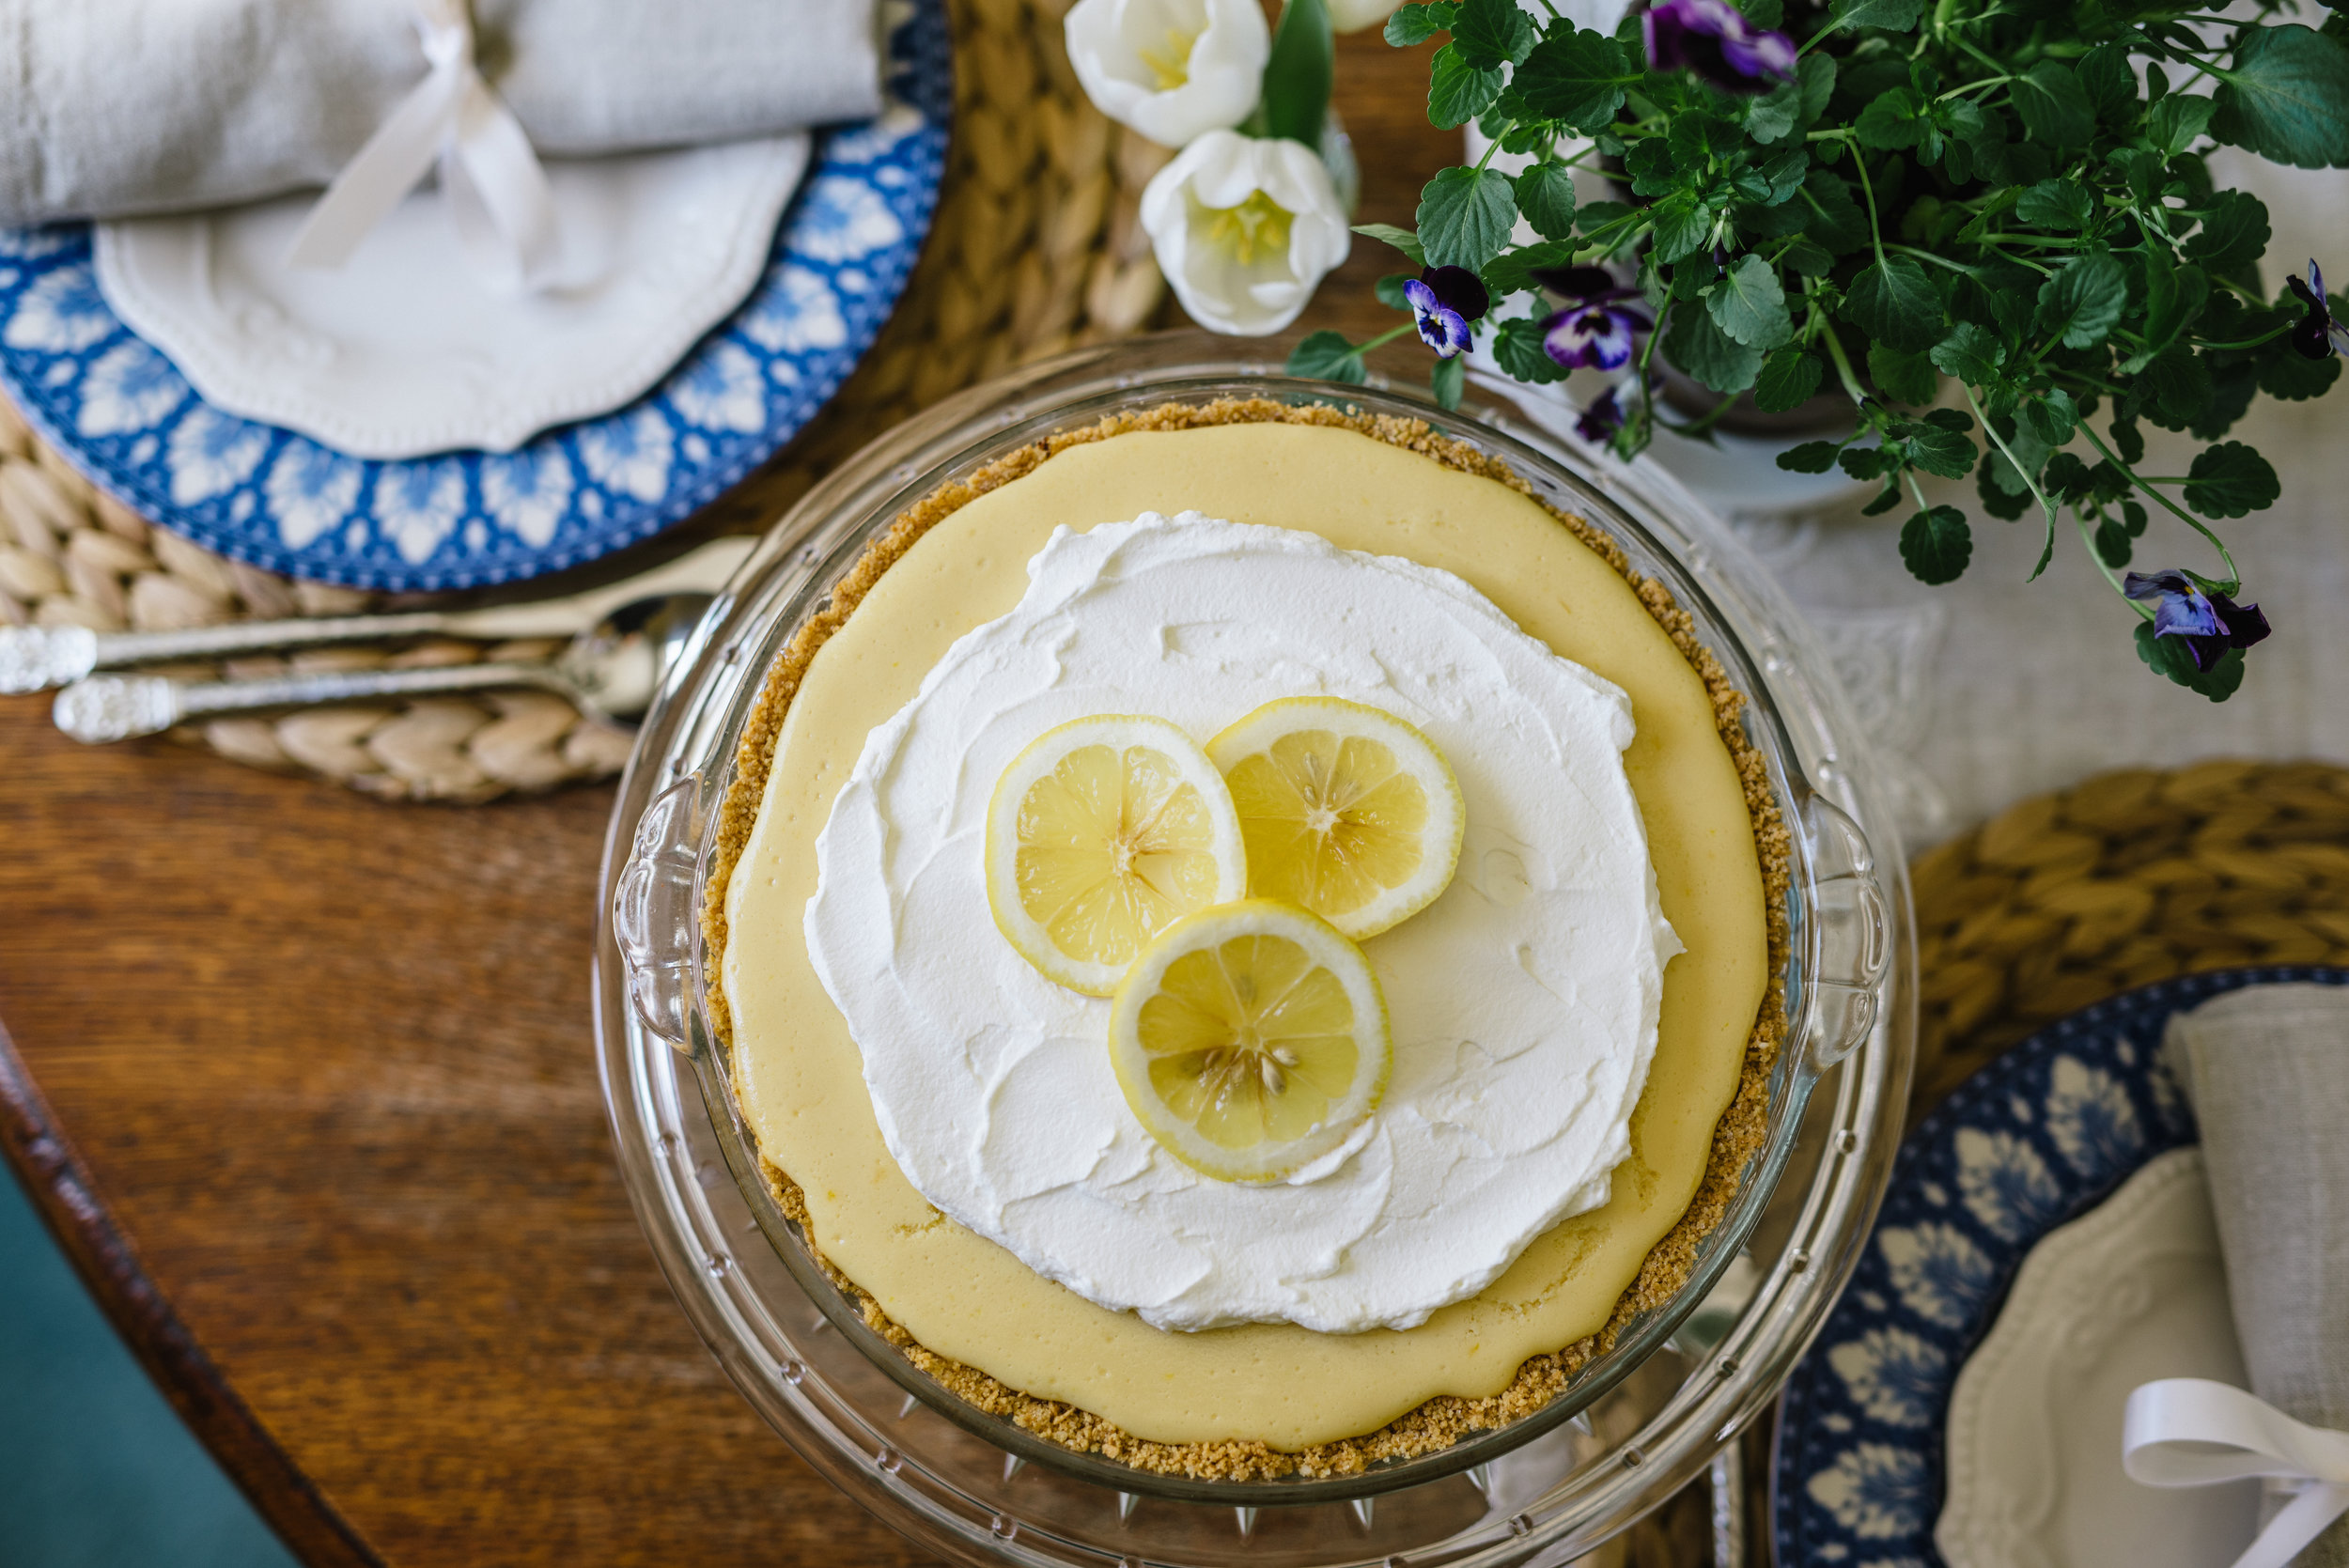 Lemon pie from the Magnolia Table Cookbook.